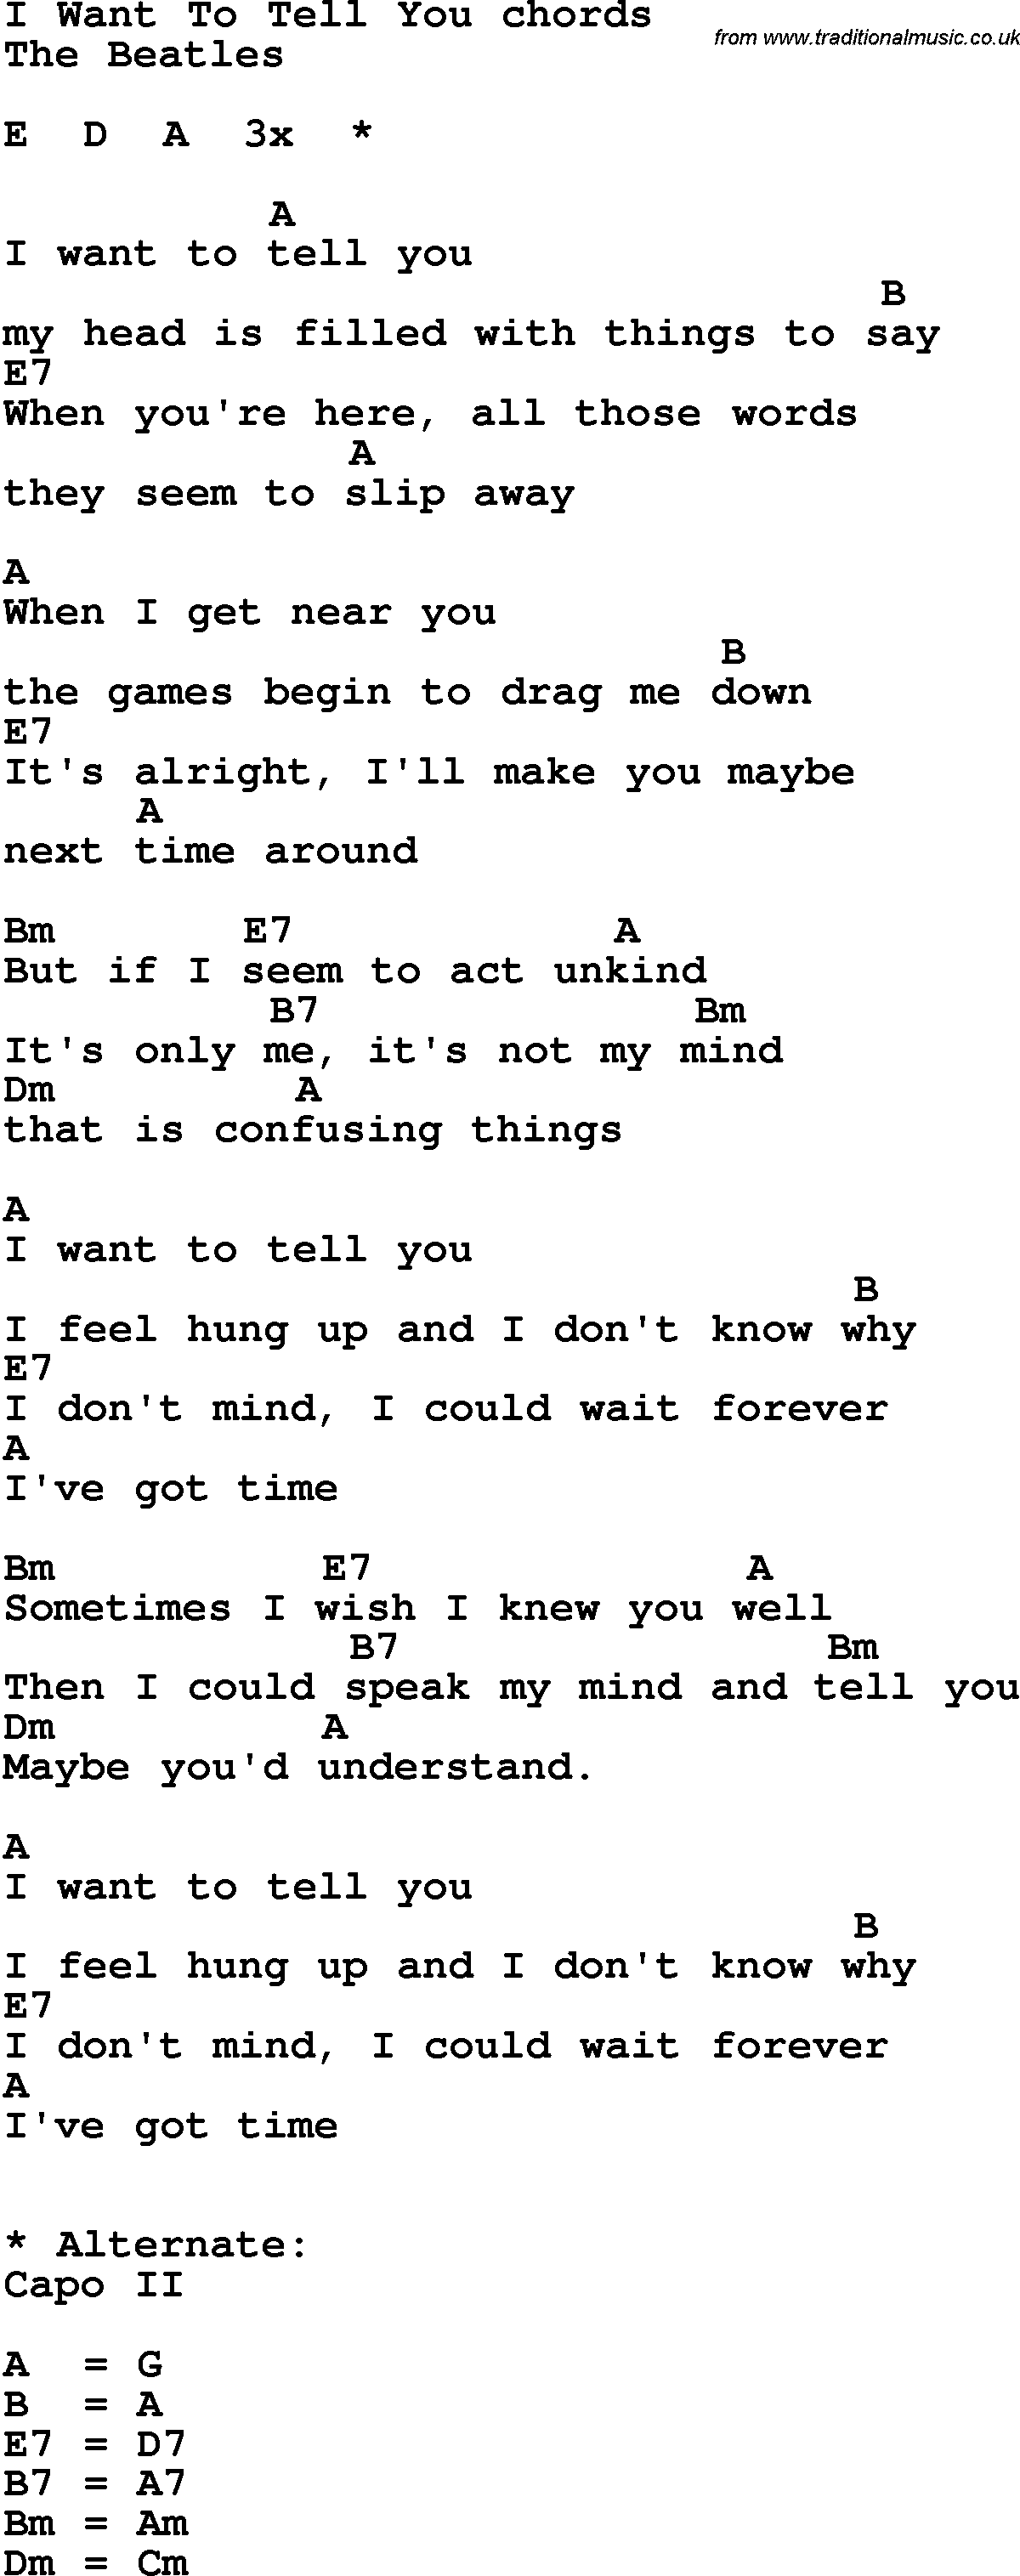 Song lyrics with guitar chords for I Want To Tell You - The Beatles